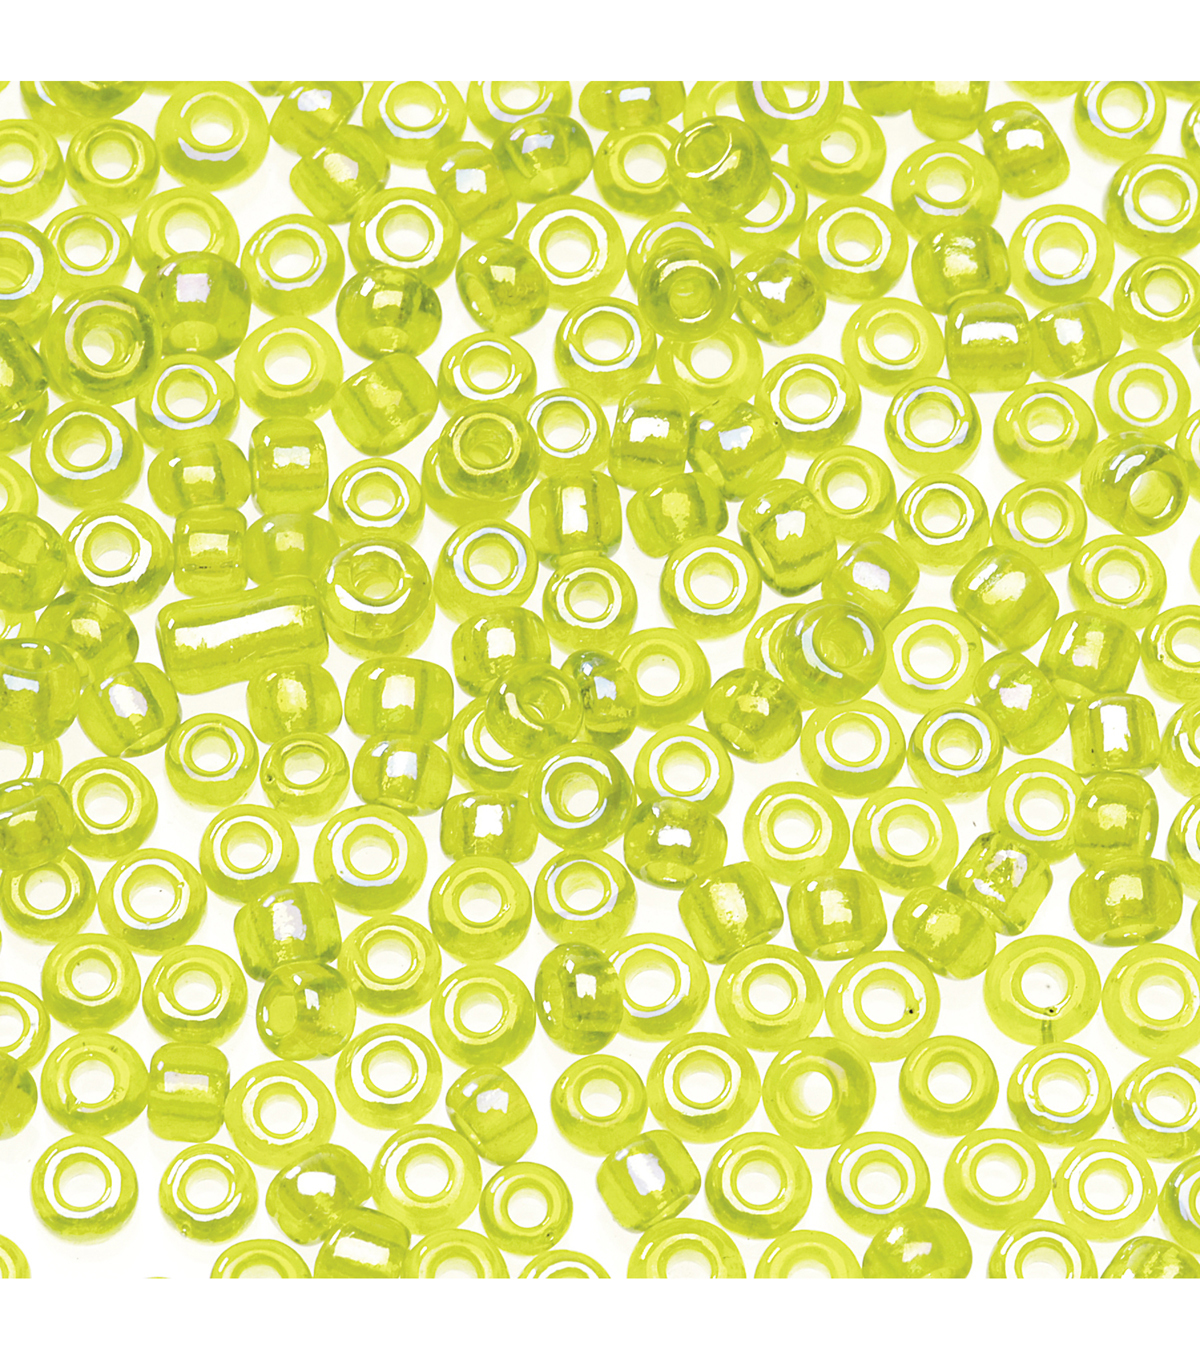 Glass Seed Beads-Lt. Green Transparent, Rainbow Effect, 10/0, 20 grams